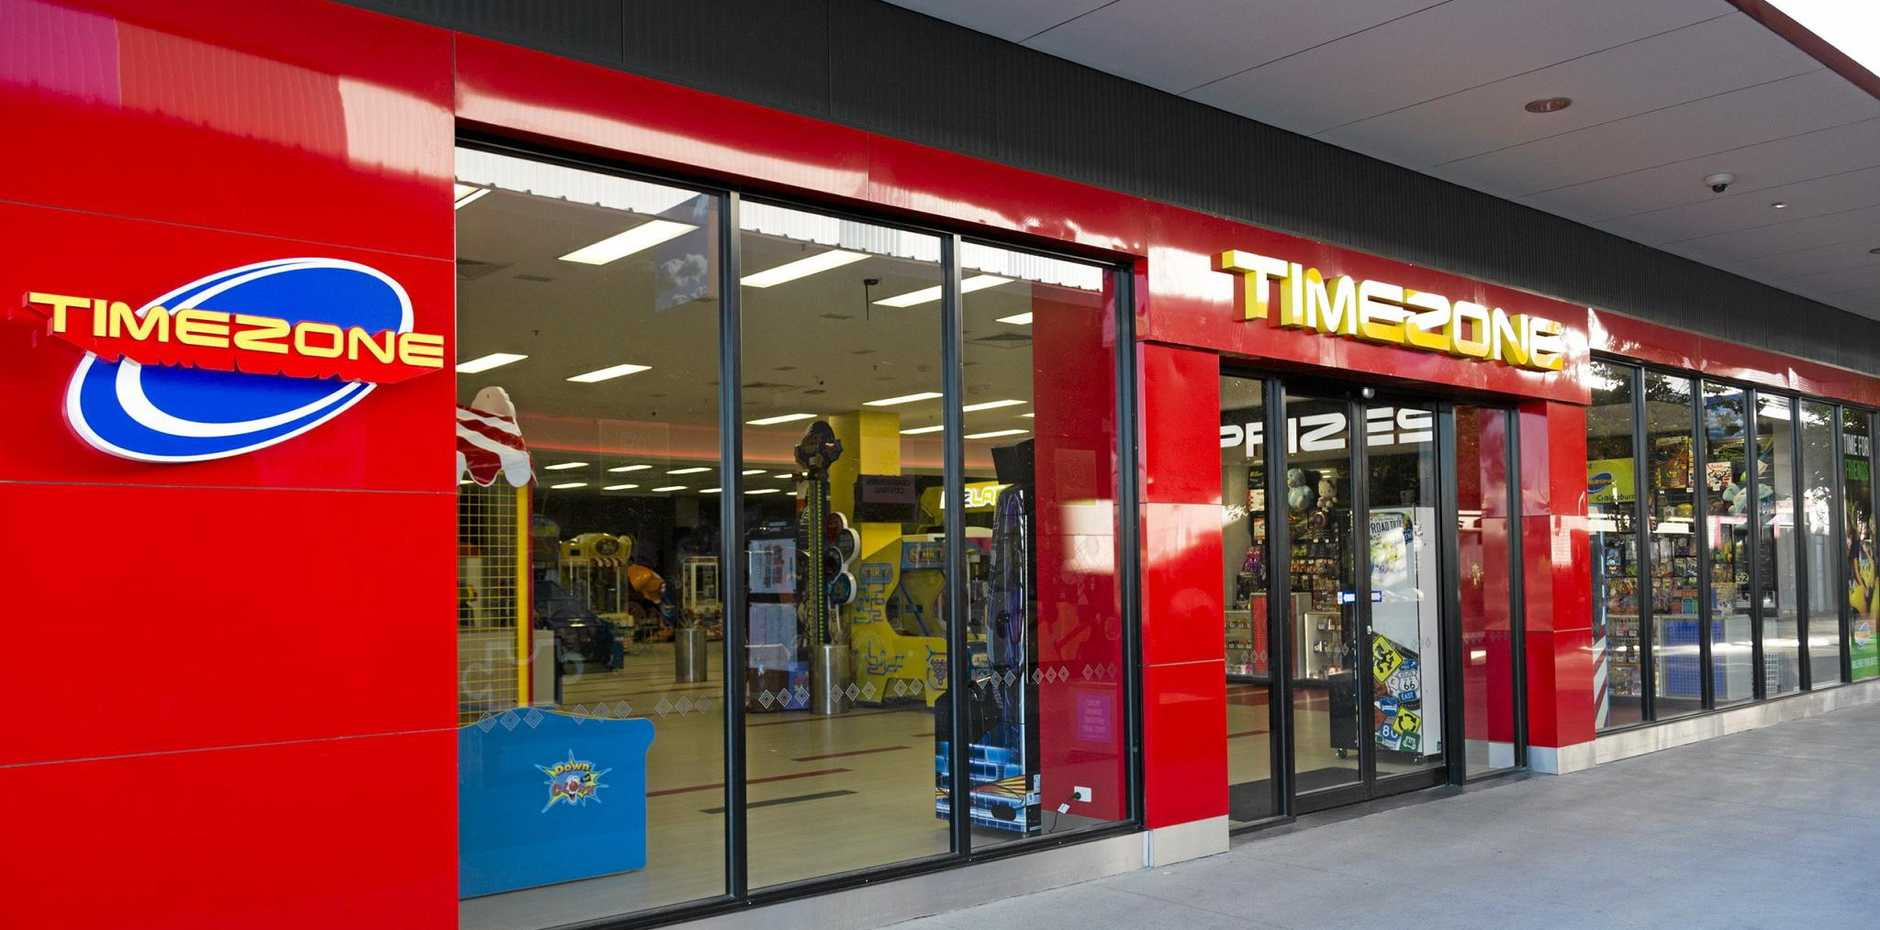 JOBS: Timezone is looking for passionate people to work at their new Caneland Central Mackay store.